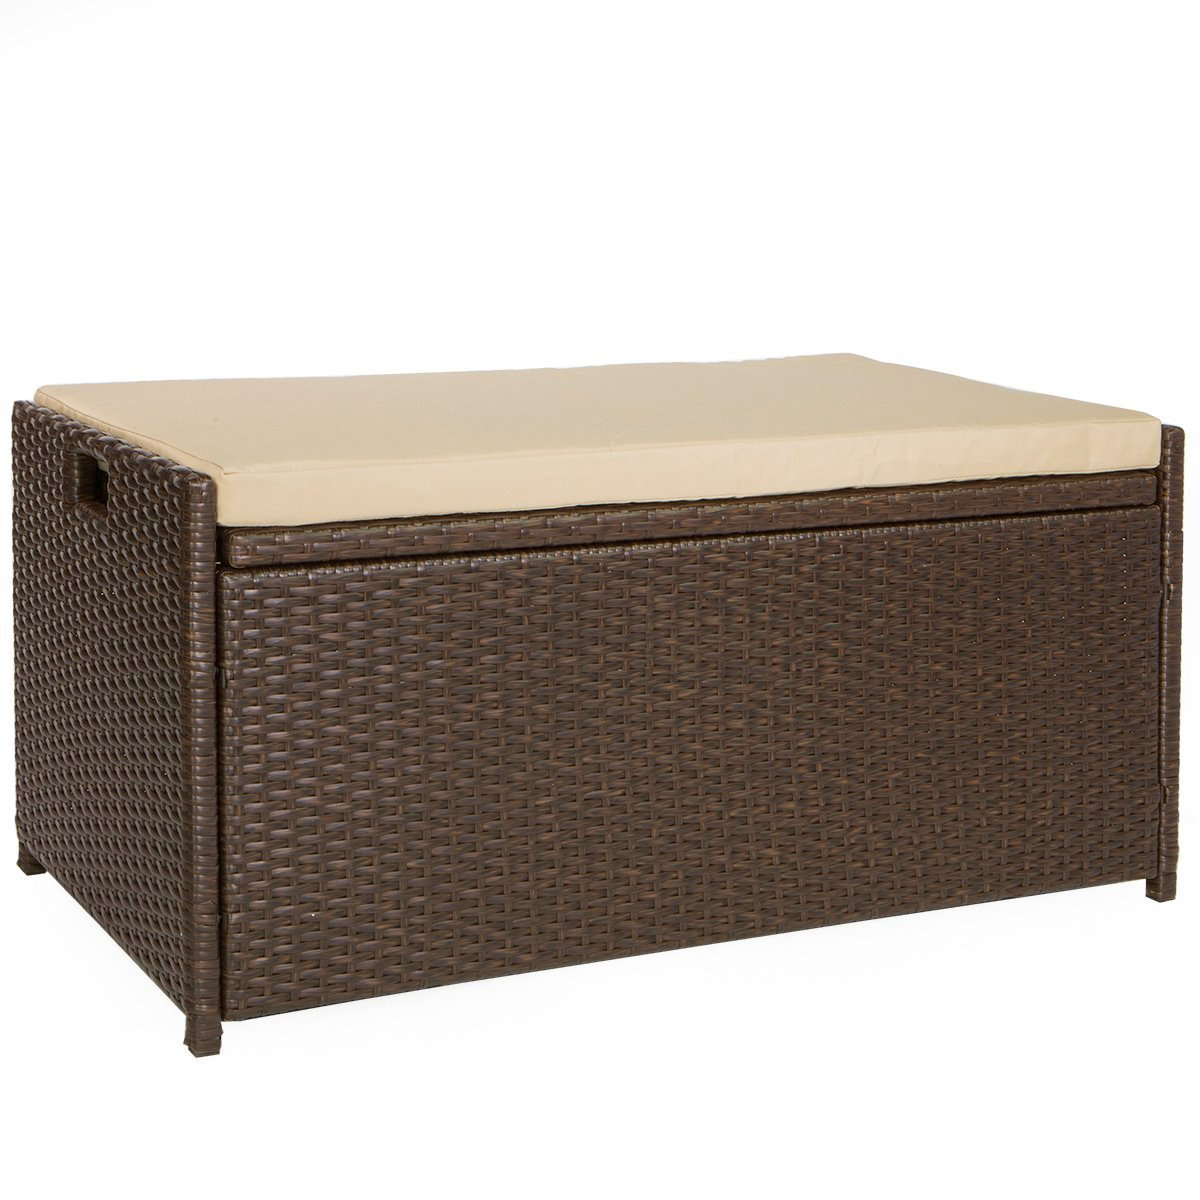 Victoria Young Resin Wicker Deck Box Storage Bench